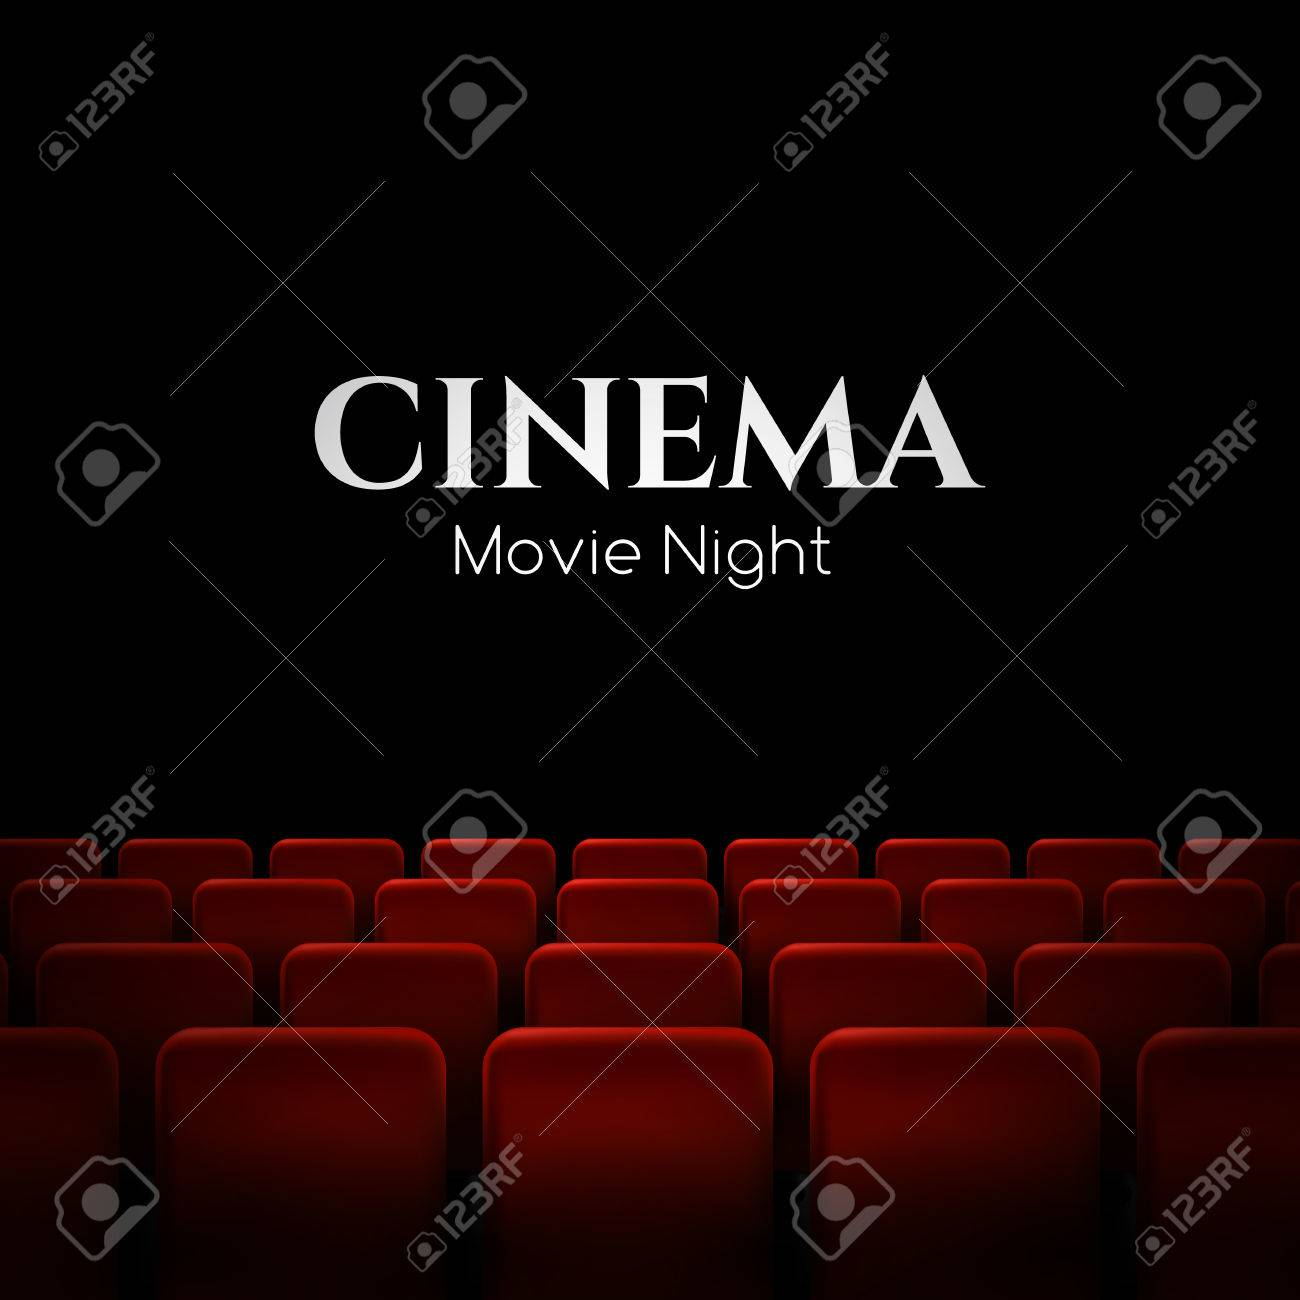 Movie cinema premiere poster design with red seats. Vector background. - 70776419